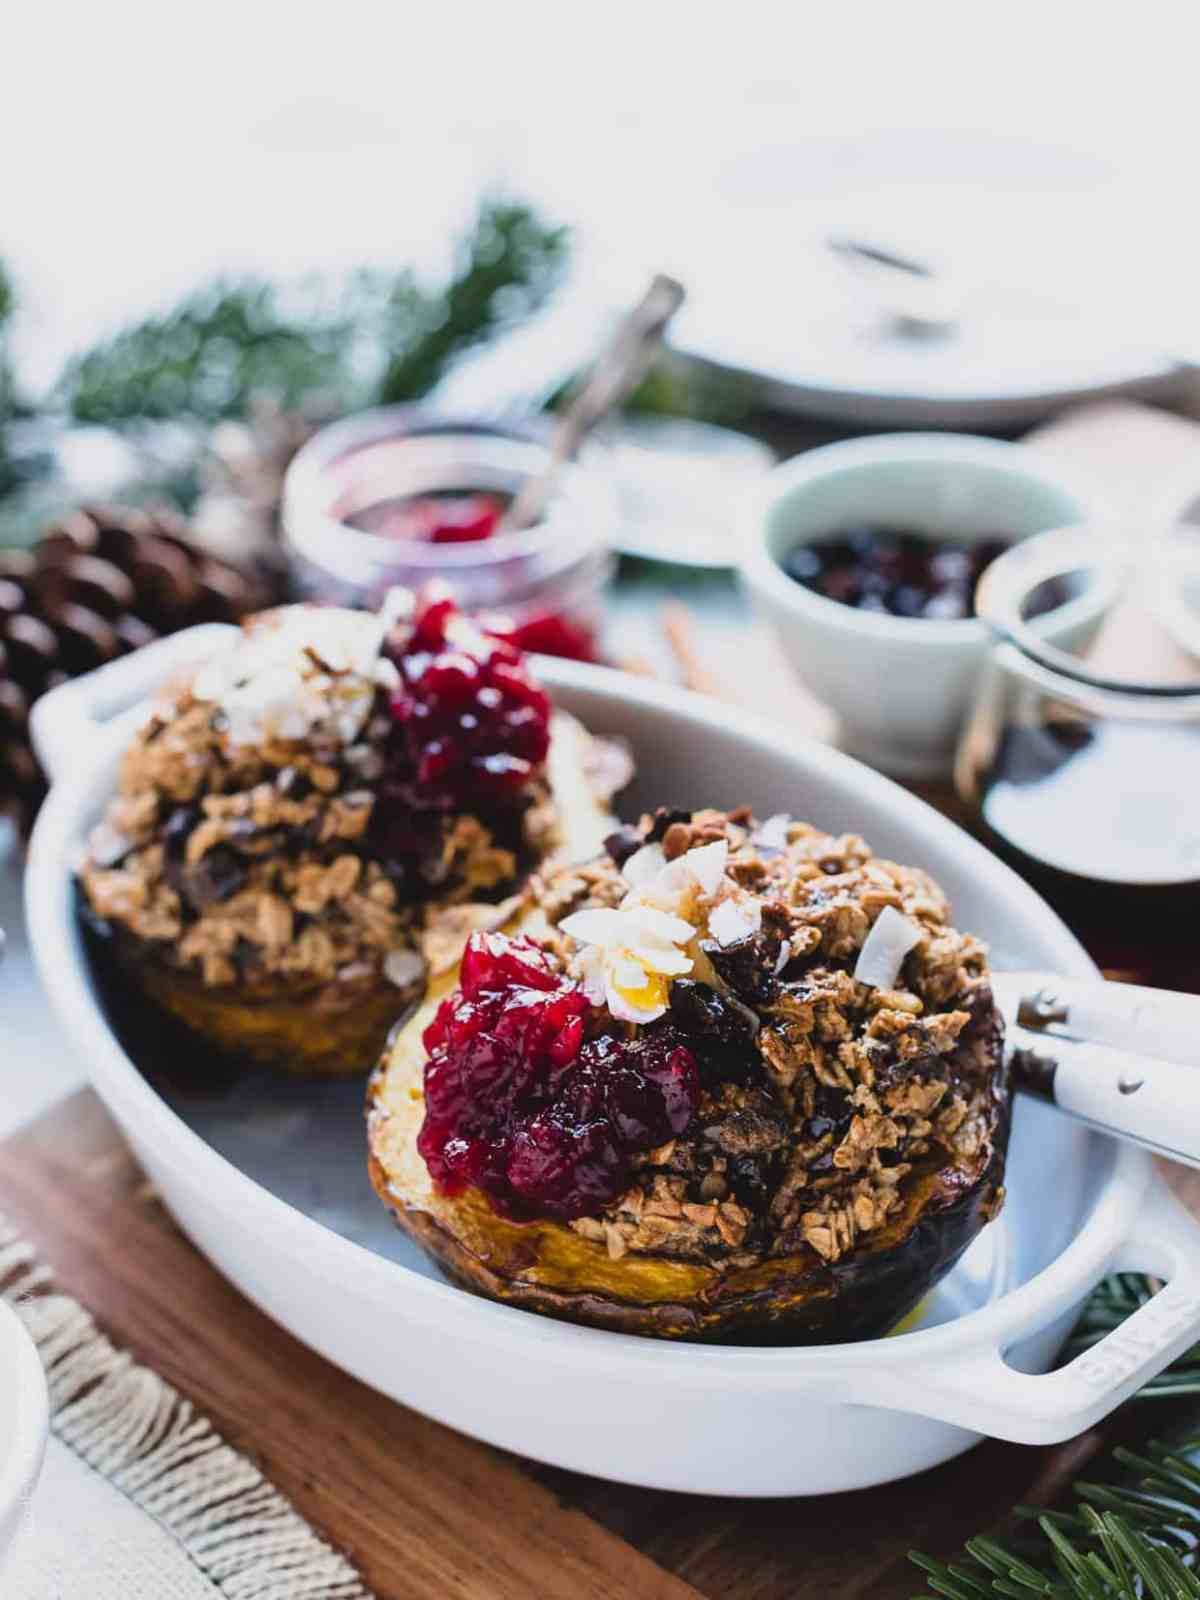 Two halves of Baked Oatmeal Stuffed Acorn Squash in a white baking dish garnished with cranberry sauce.